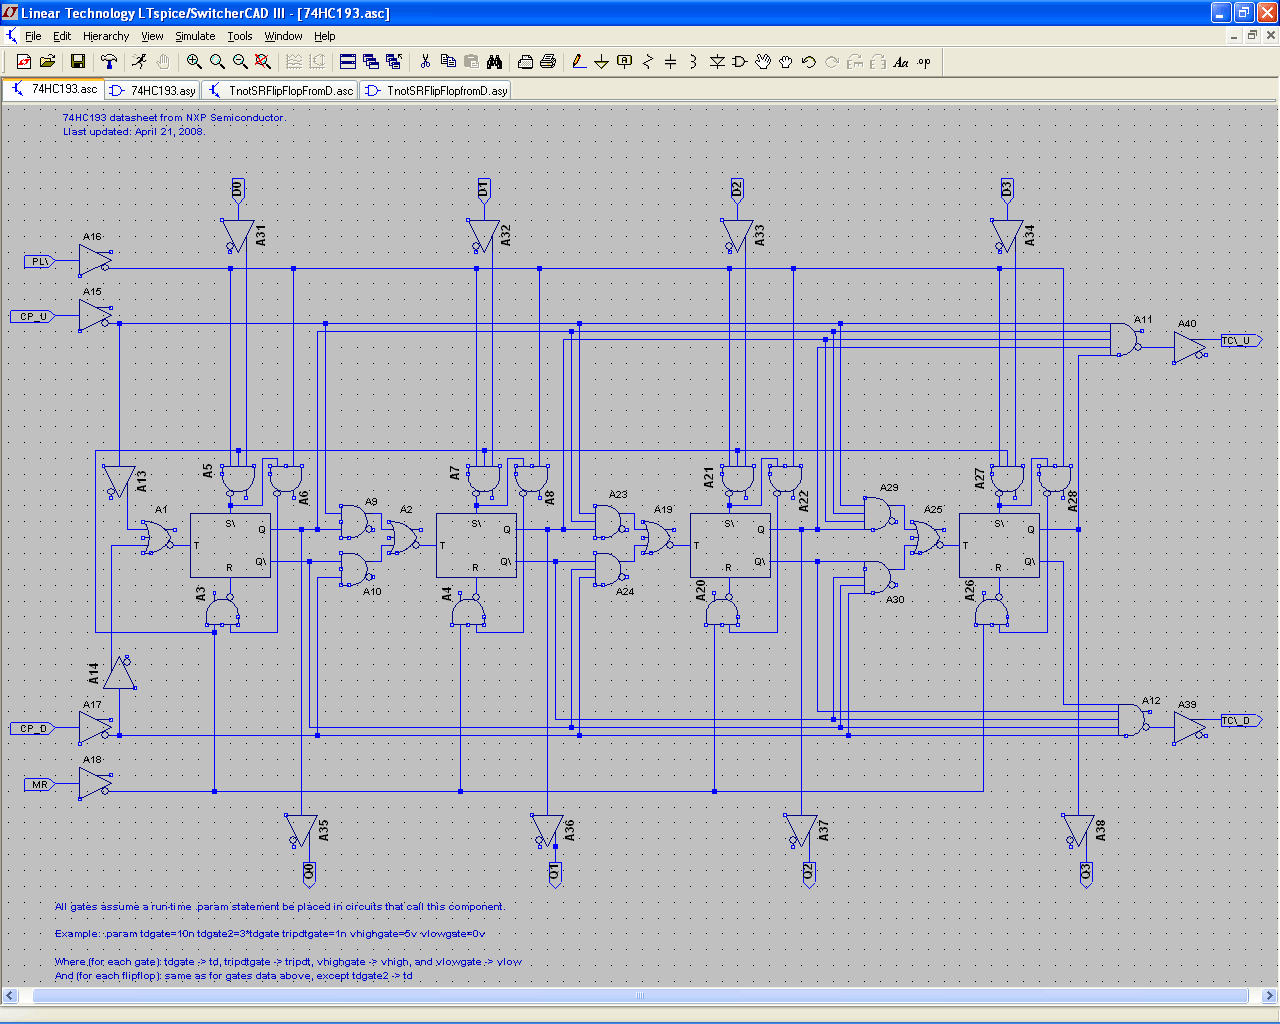 74hc193 Circuit and Related Components - Large View